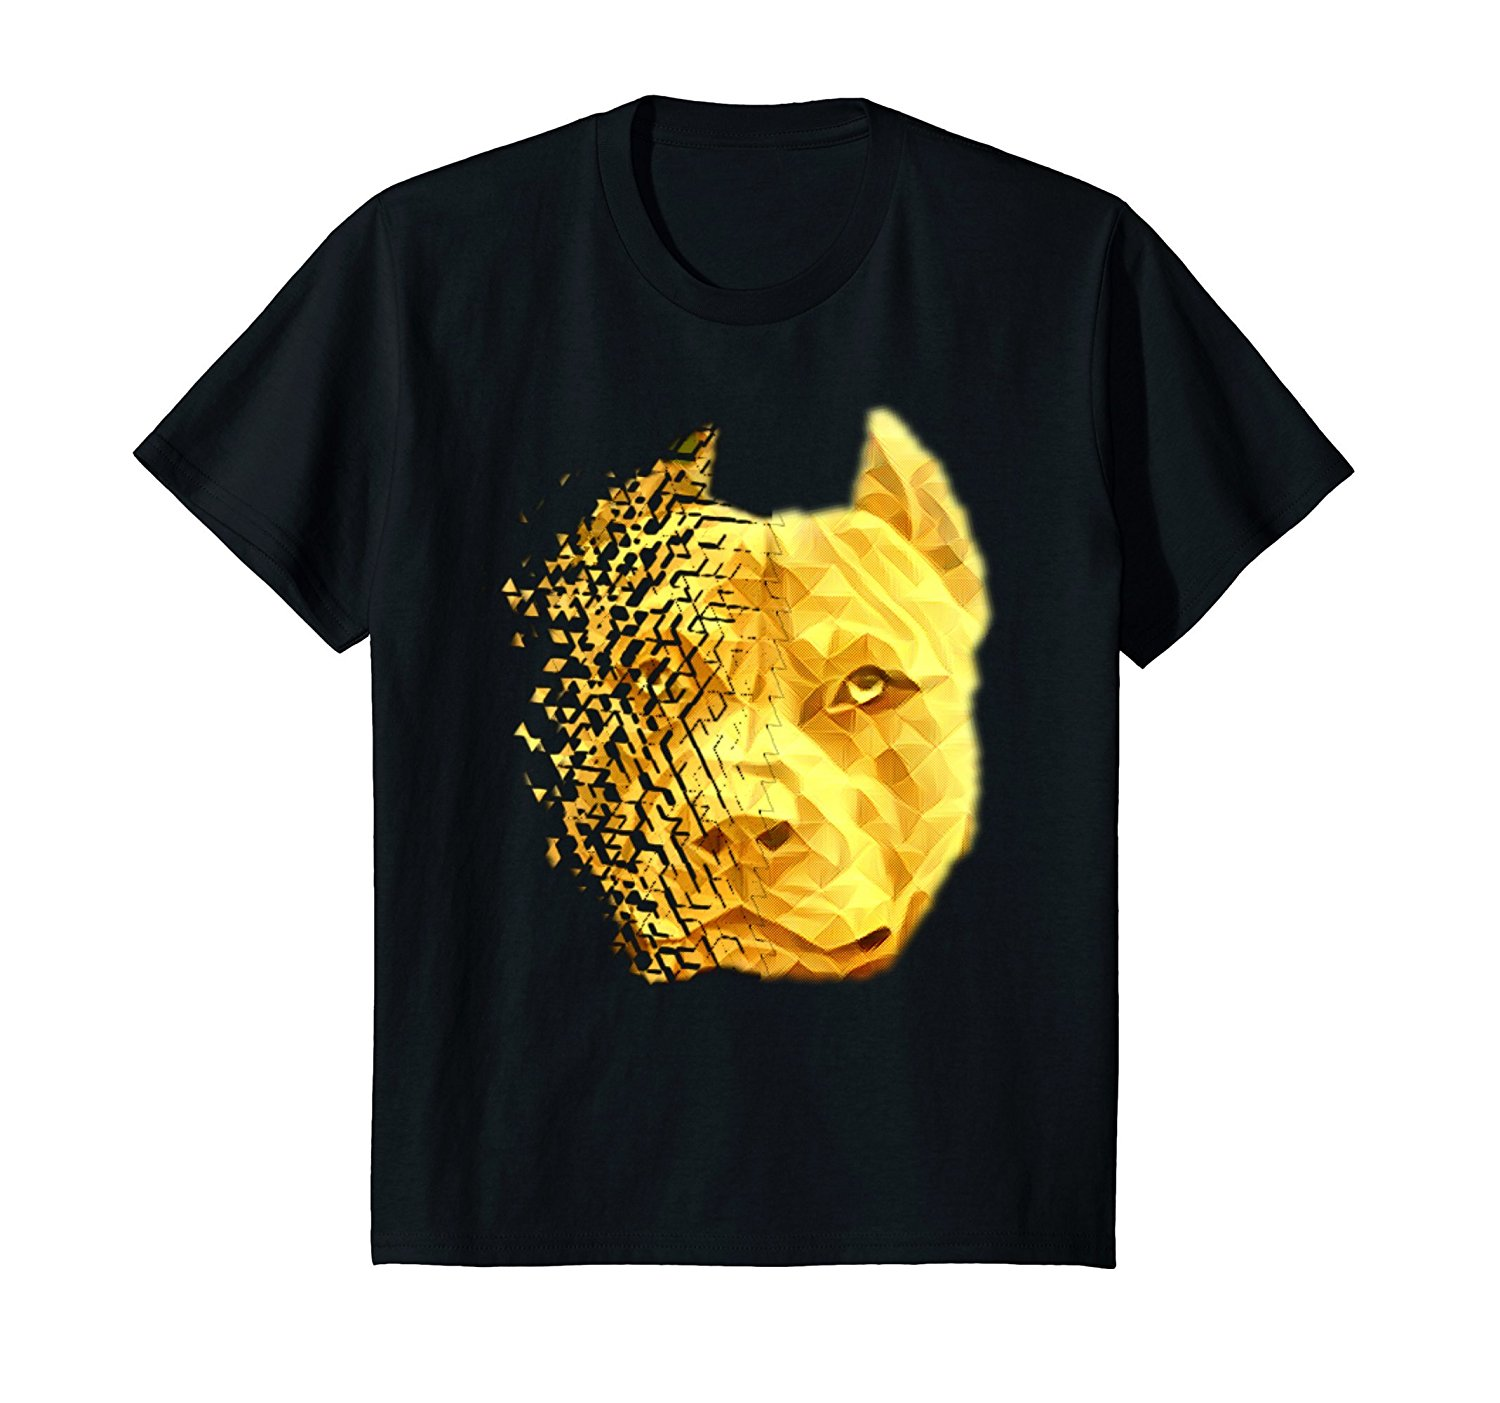 2019 Hot sale Fashion 100% cotton <font><b>Pit</b></font> <font><b>Bull</b></font> Shattered Gold Designer T-<font><b>Shirt</b></font> Tee <font><b>shirt</b></font> image